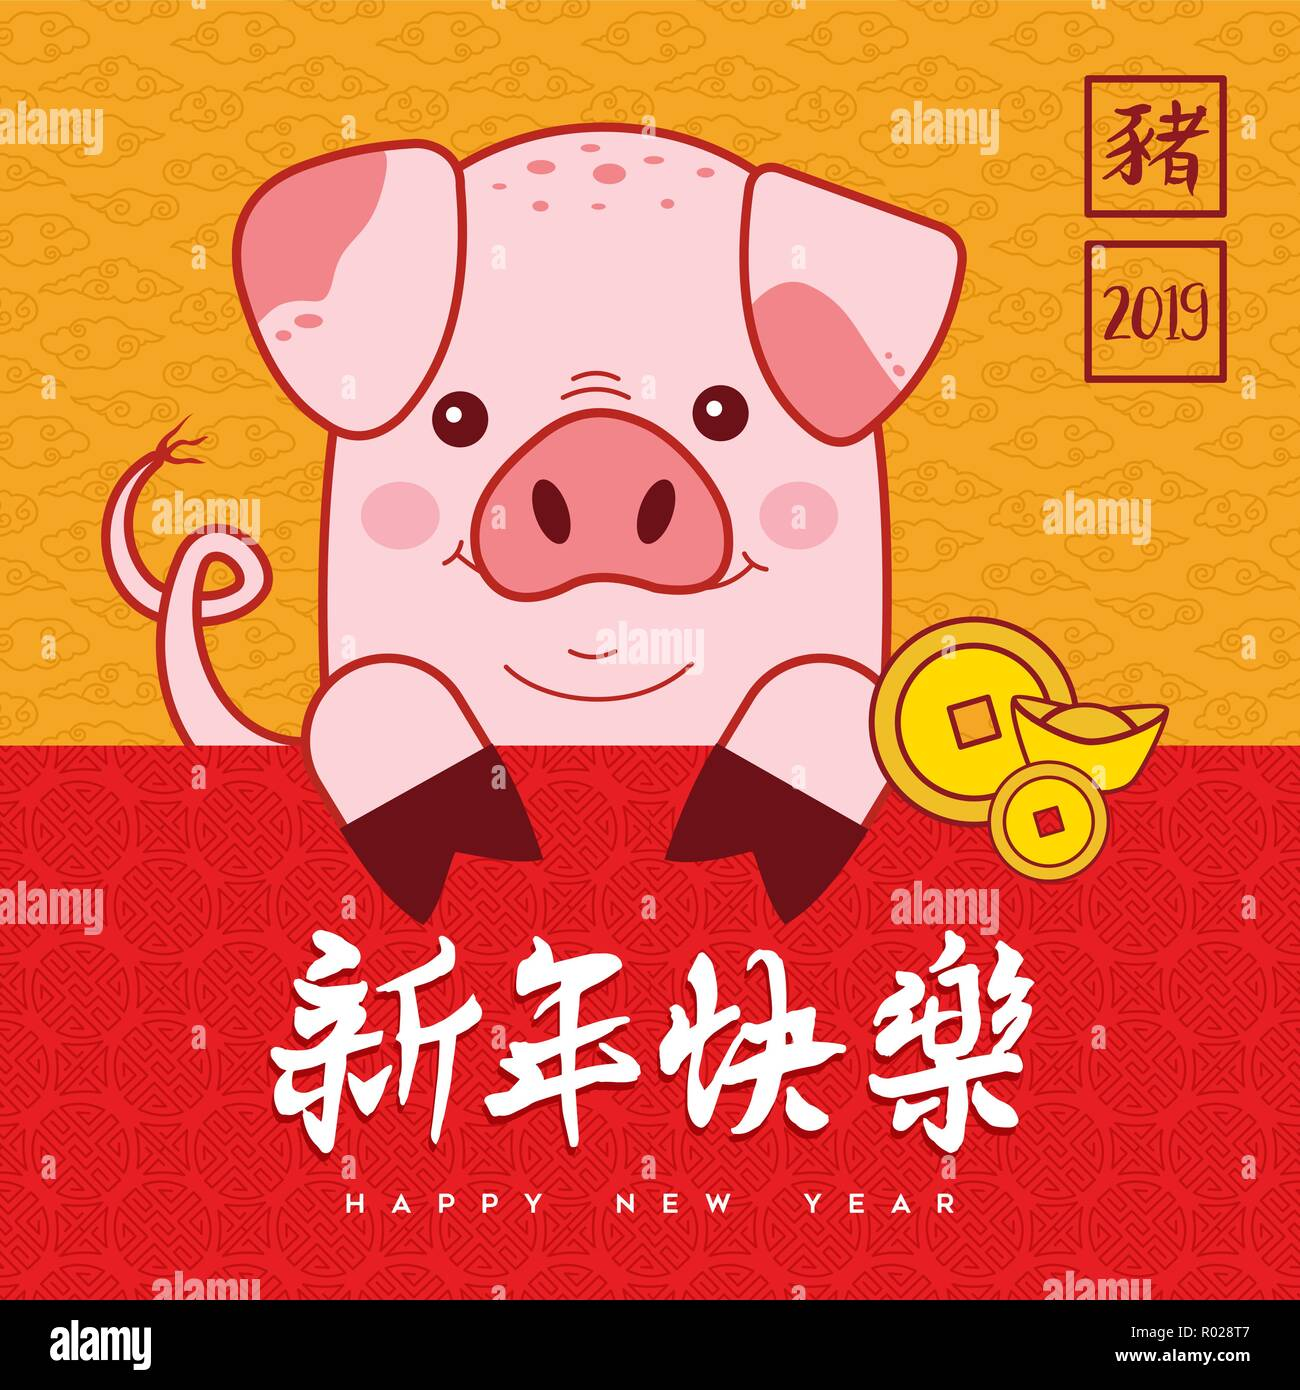 chinese new year of the pig 2019 greeting card illustration with